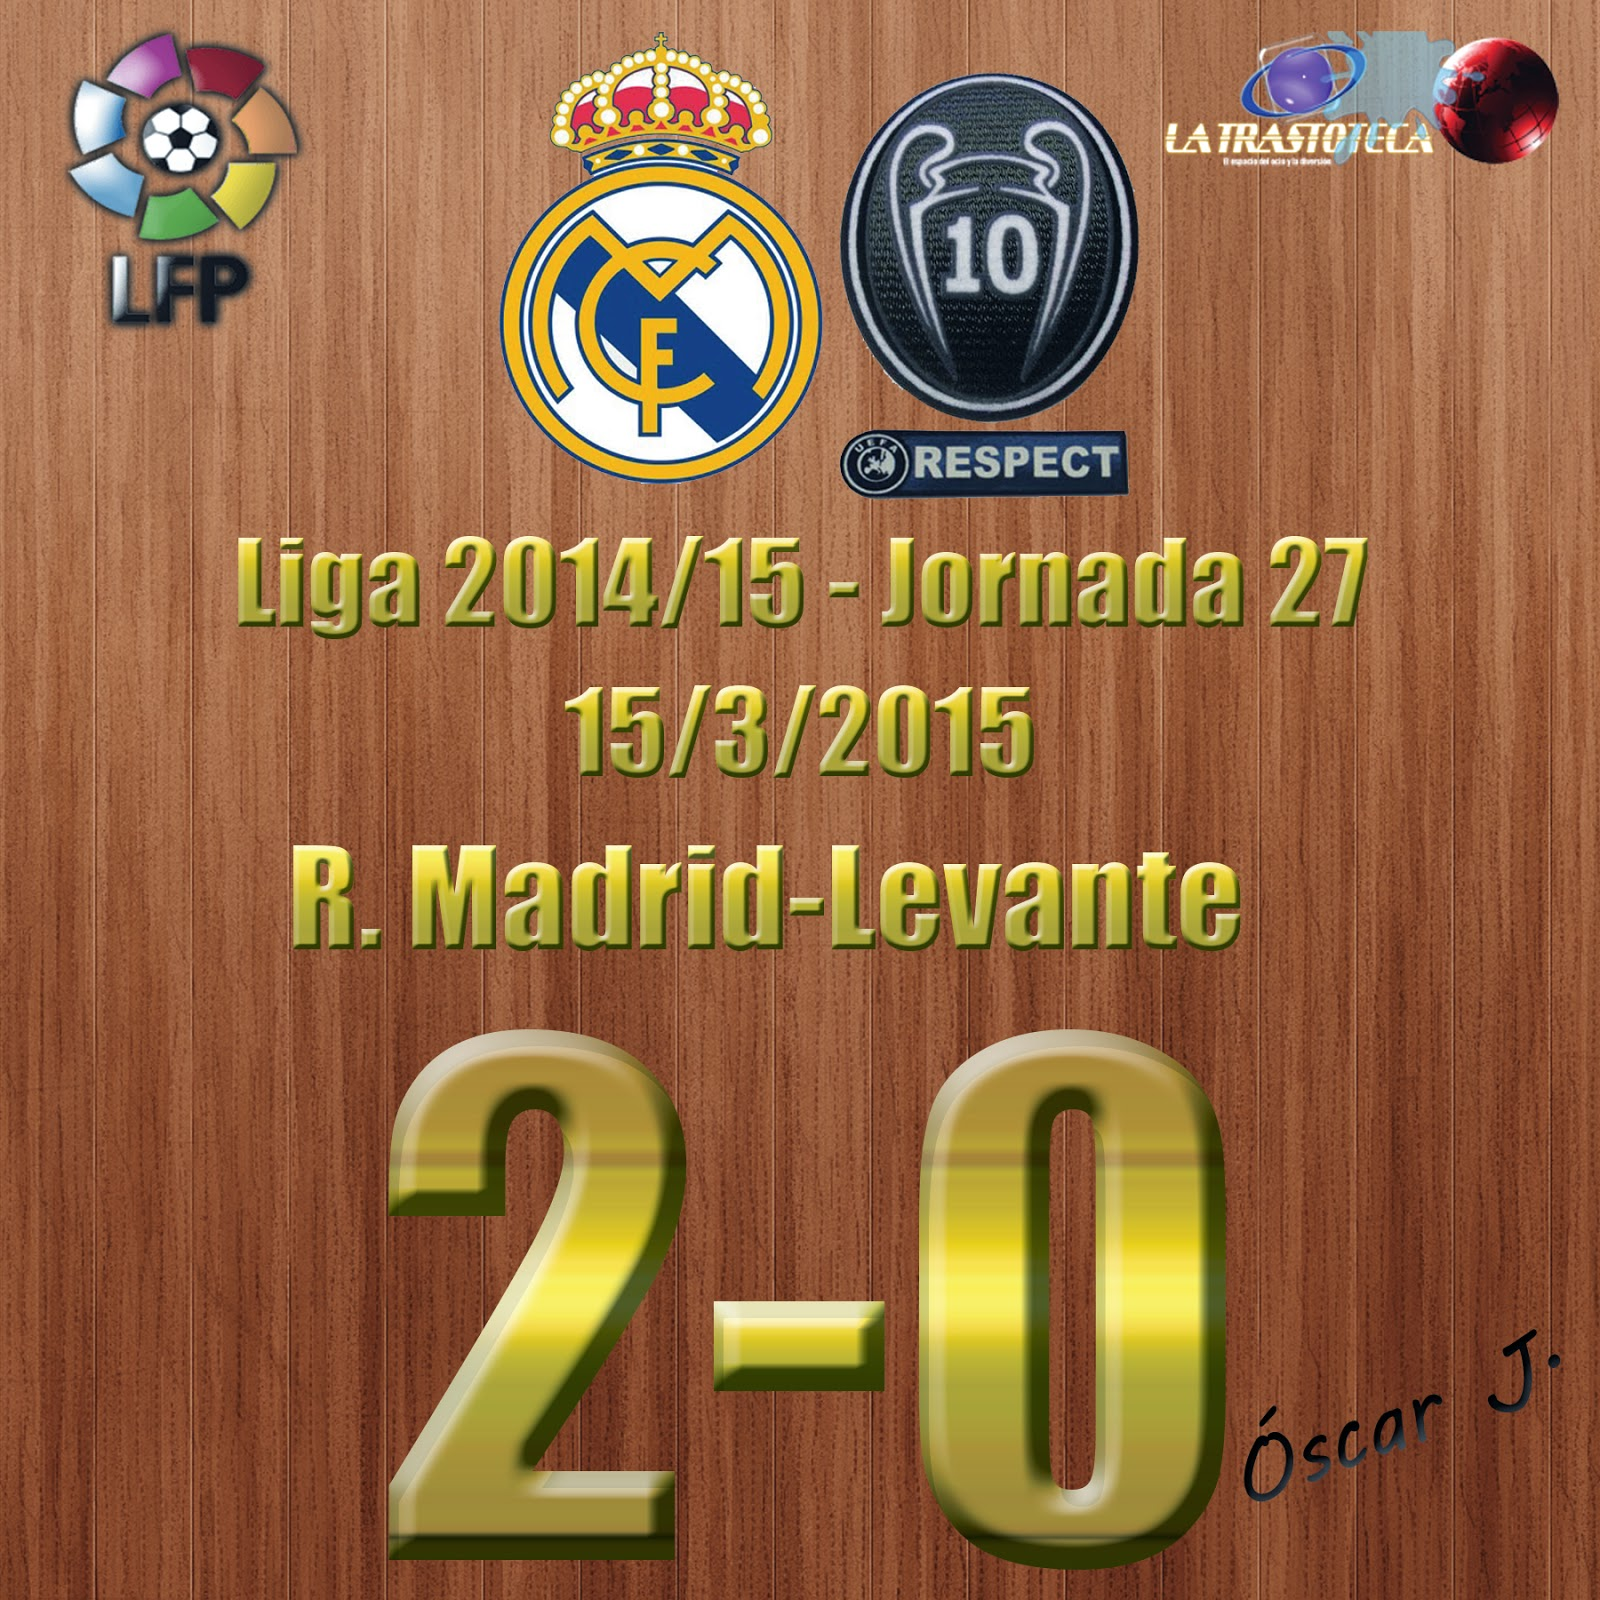 Real Madrid 2-0 Levante - Liga 2014/15 - Jornada 27 - (15/3/2015)